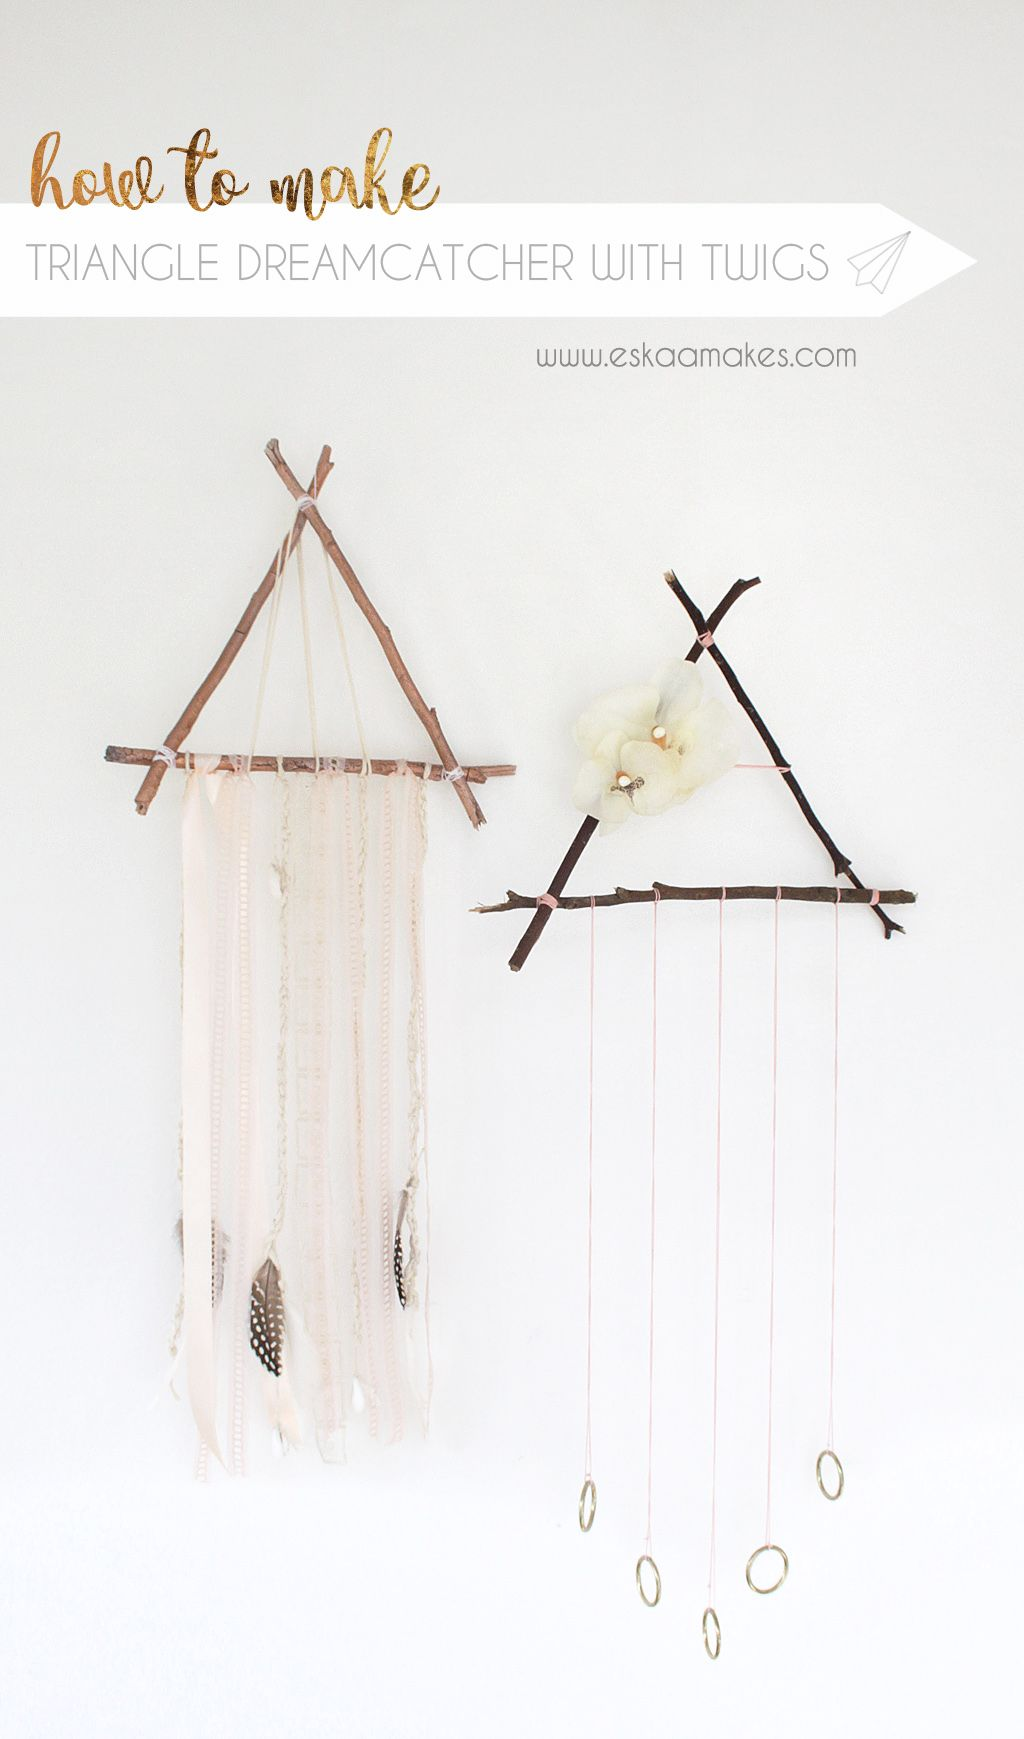 How to make: triangle dreamcatcher with twigs » [es.kaa.] makes